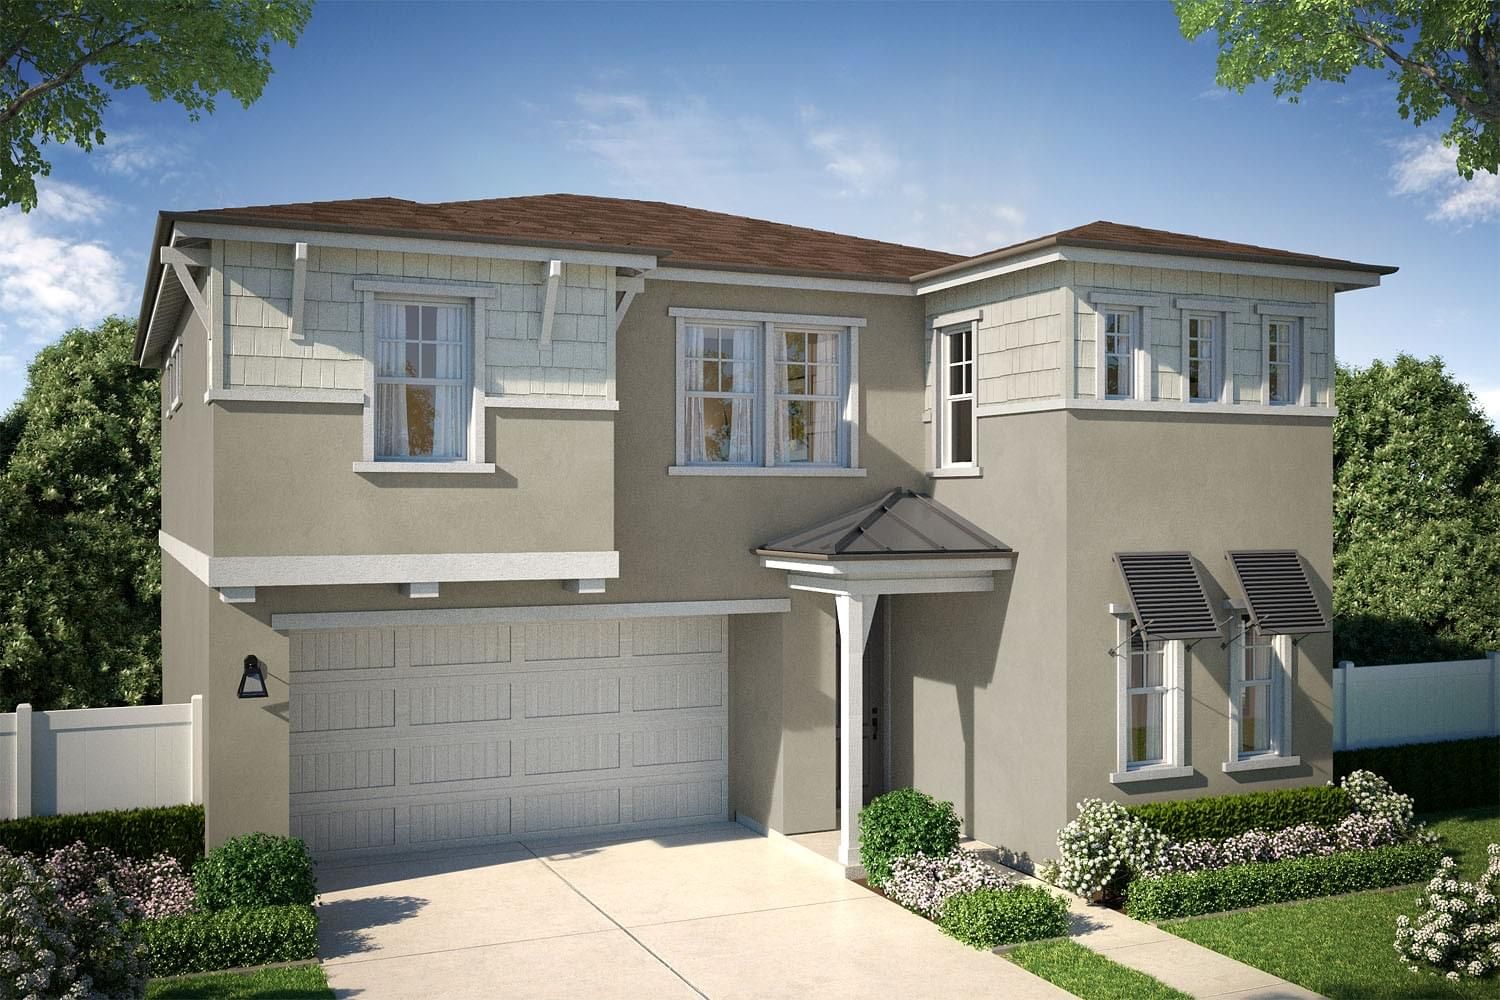 2968 Lumiere Drive in Costa Mesa , CA by DeNova Homes